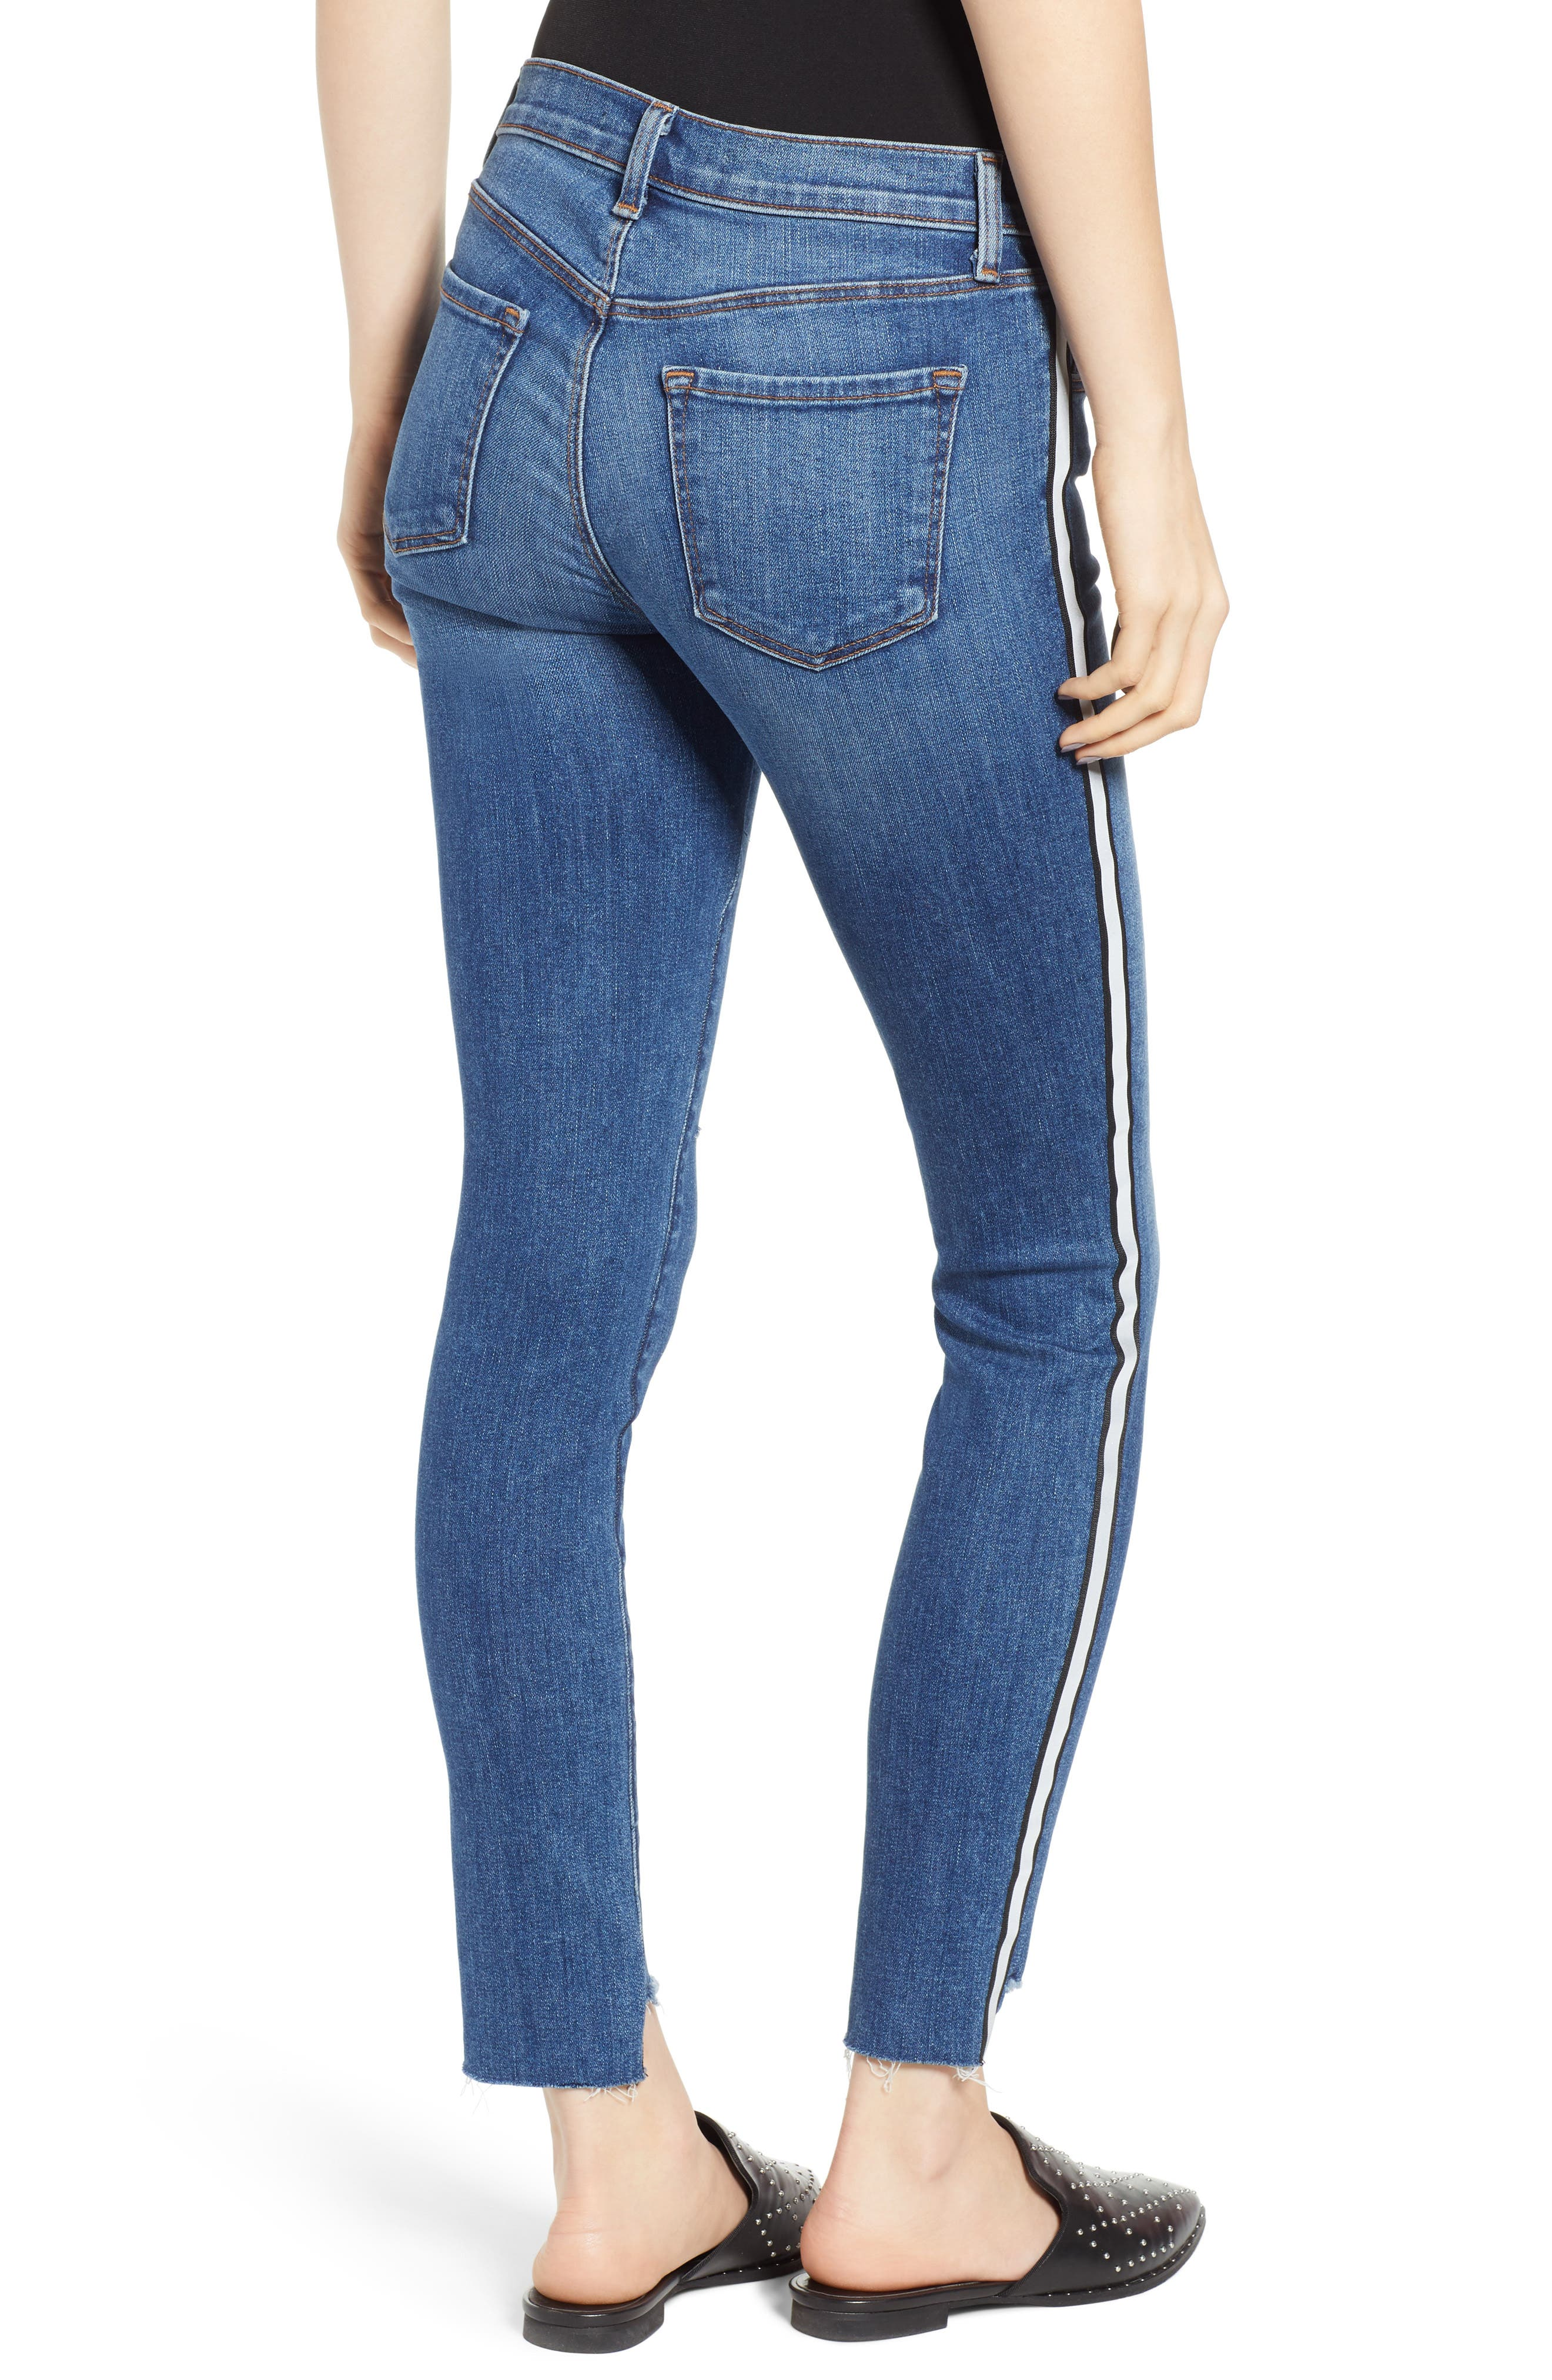 811 Skinny Jeans,                             Alternate thumbnail 2, color,                             REFLECTING